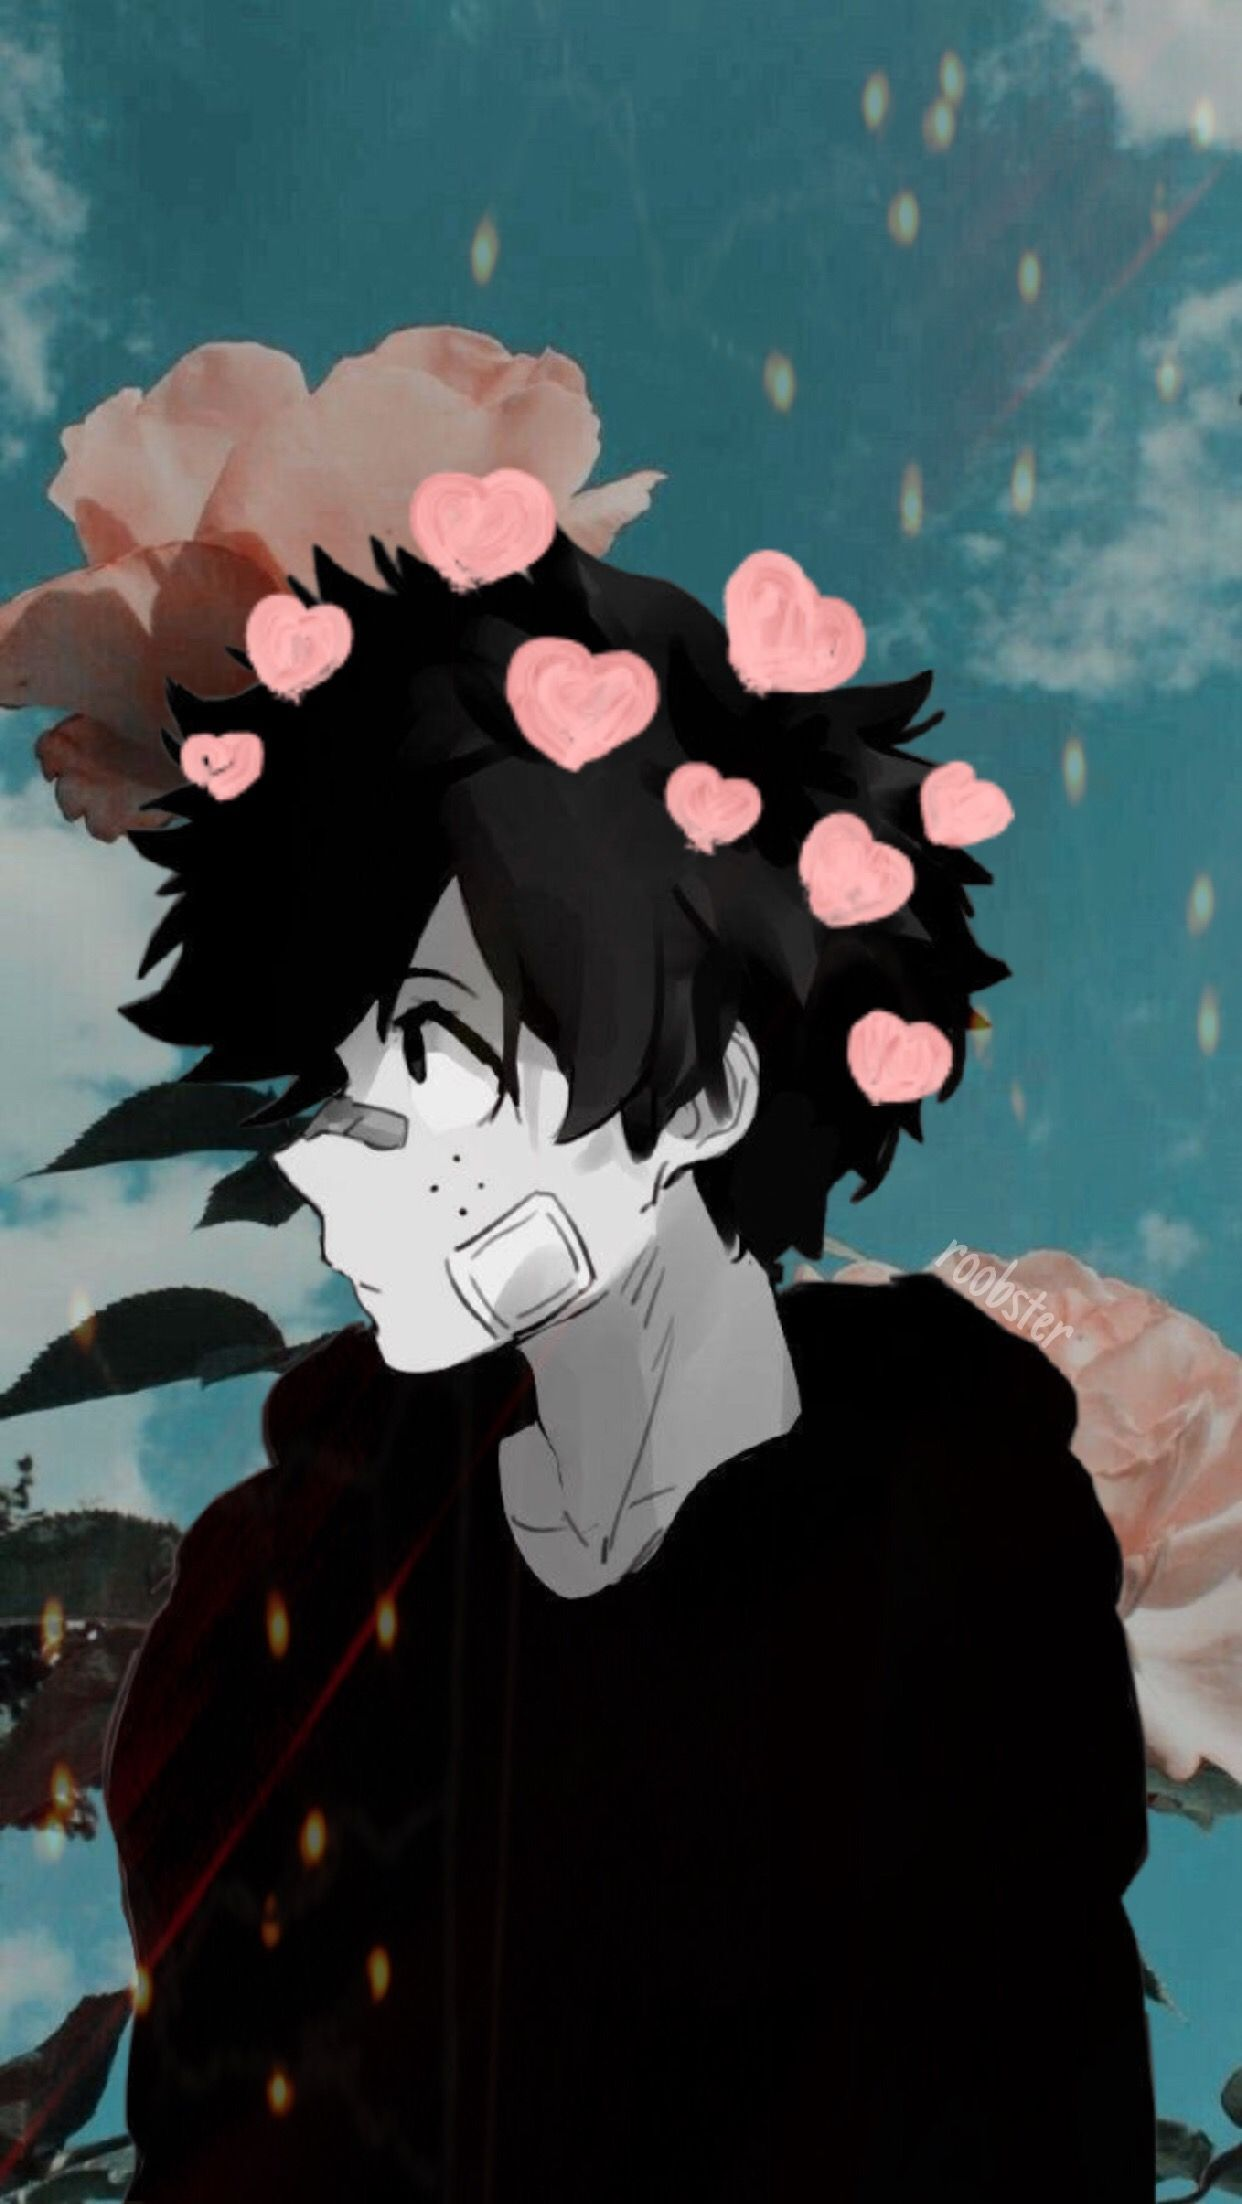 Aesthetic Anime Boy Cute Wallpapers - Wallpaper Cave